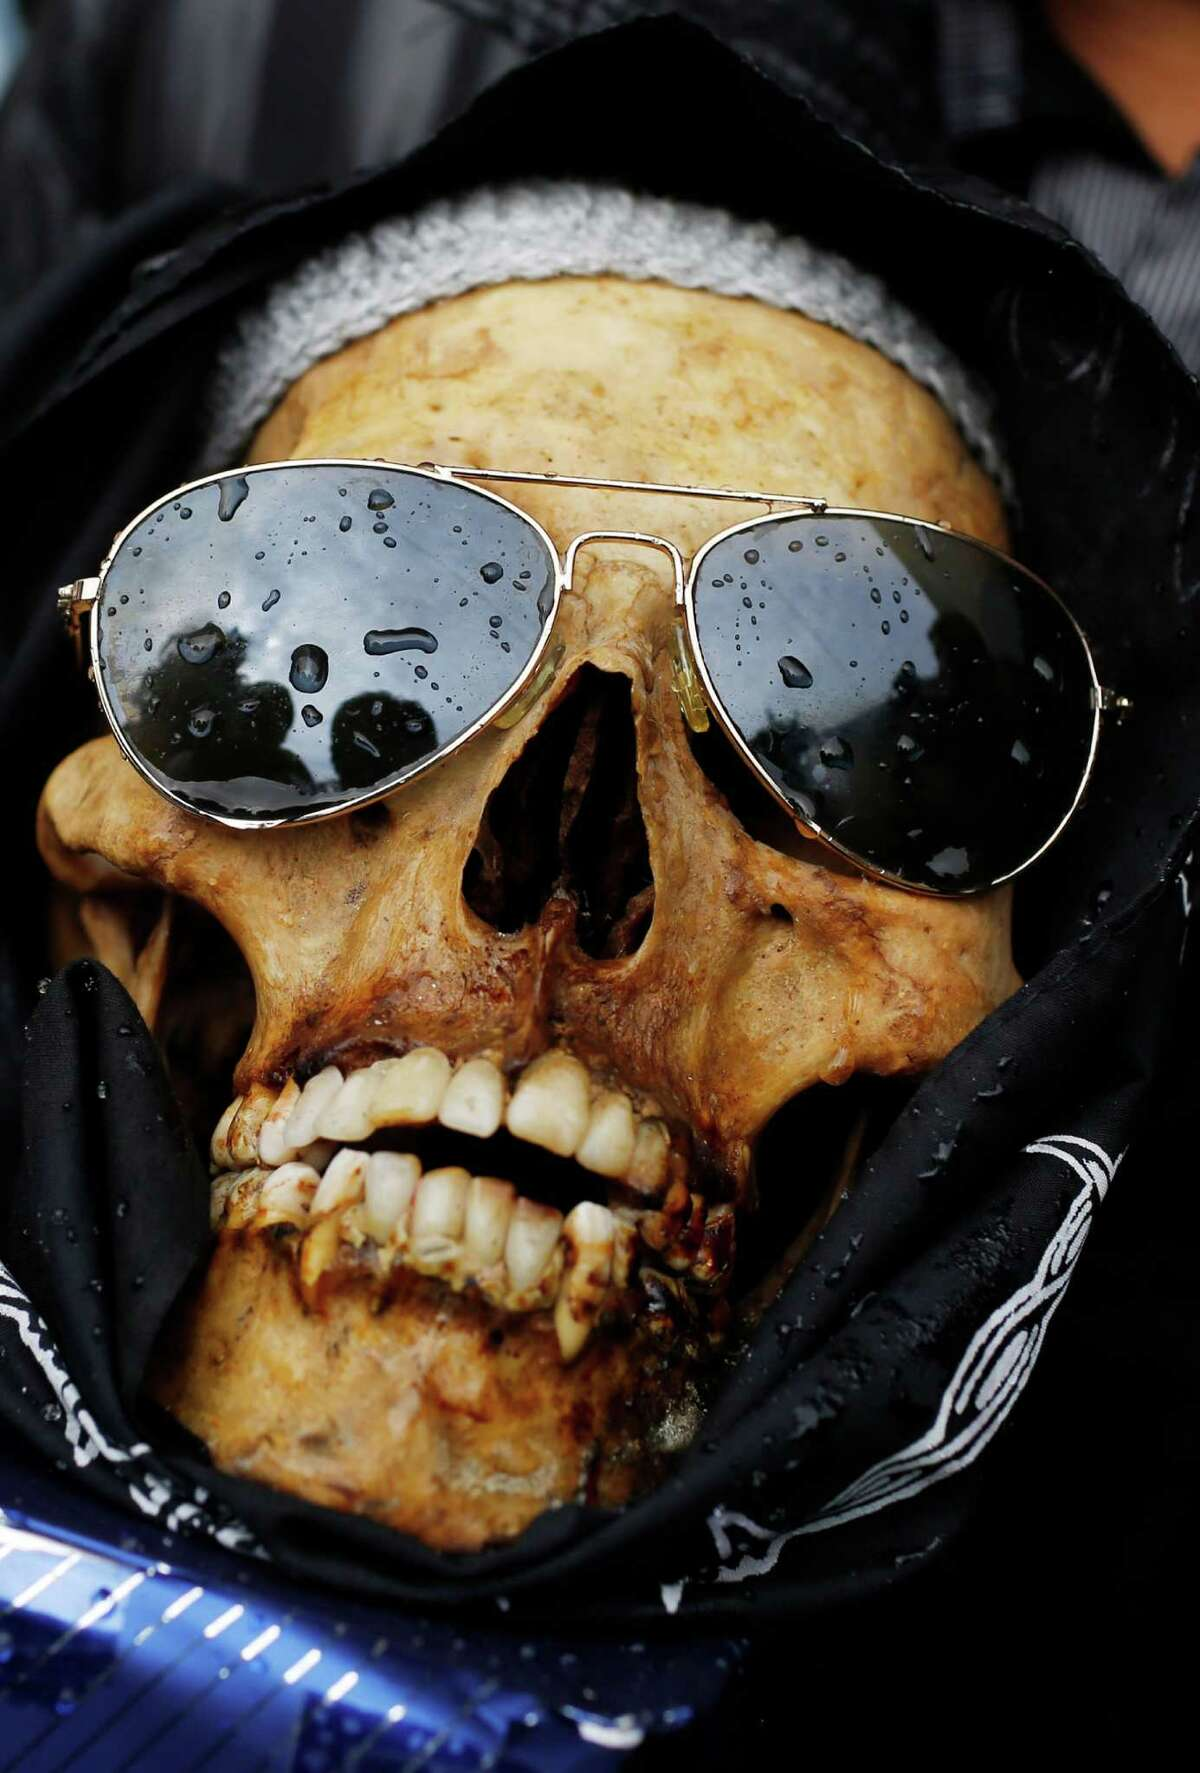 A human skull or